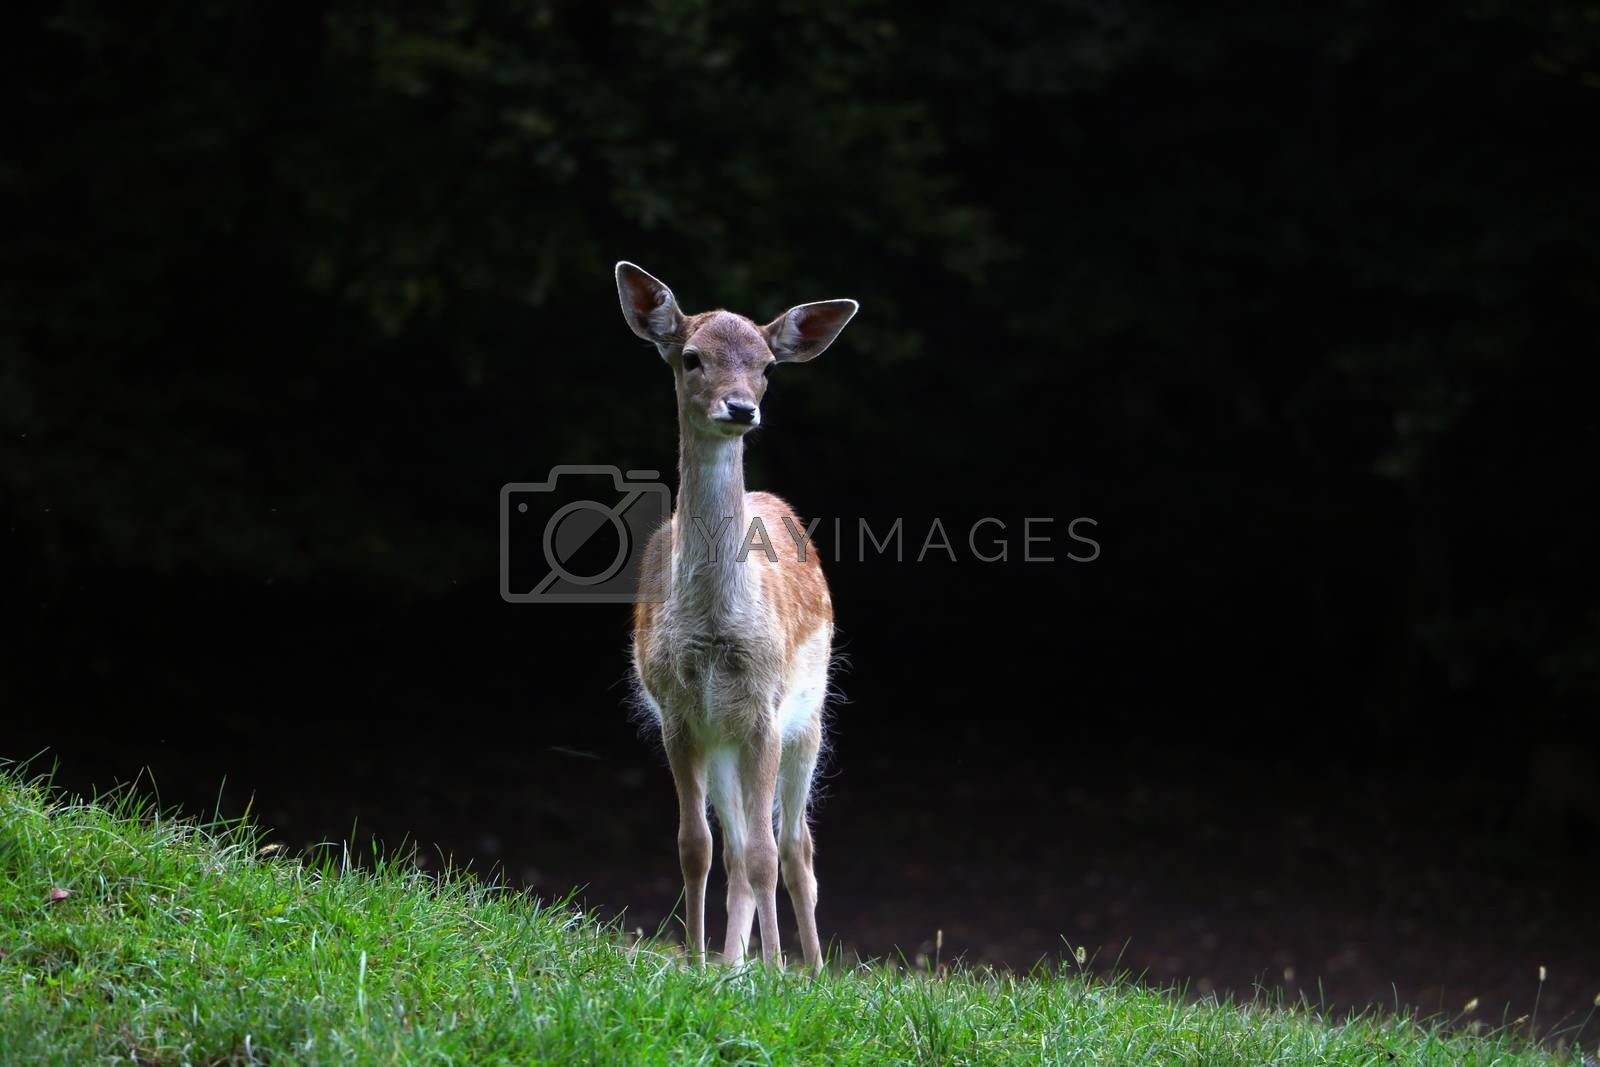 A funny little sika deer came out of the forest into a green meadow